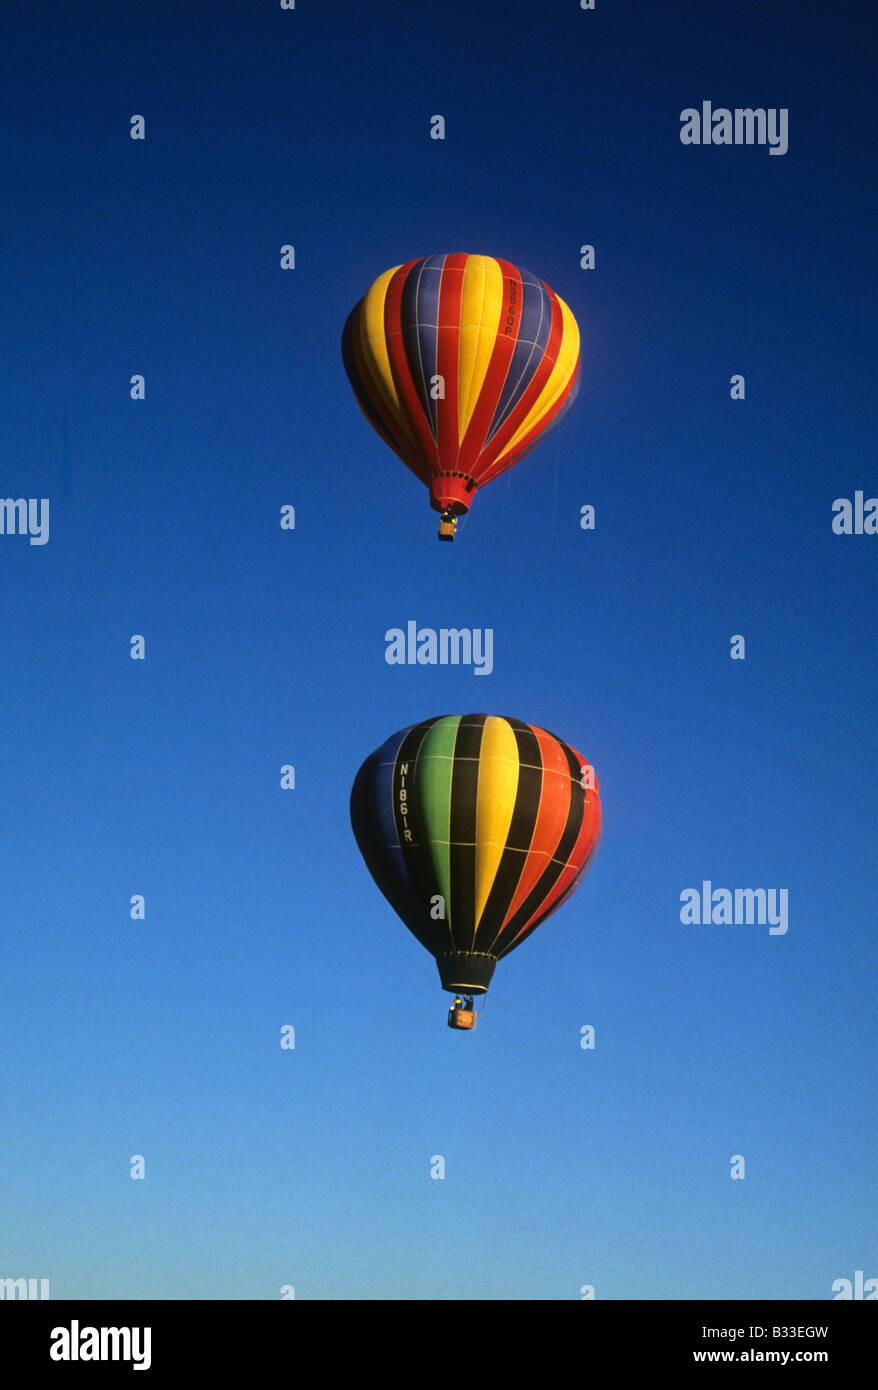 Hot-air balloons rise against blue sky, Perris, California, USA - Stock Image